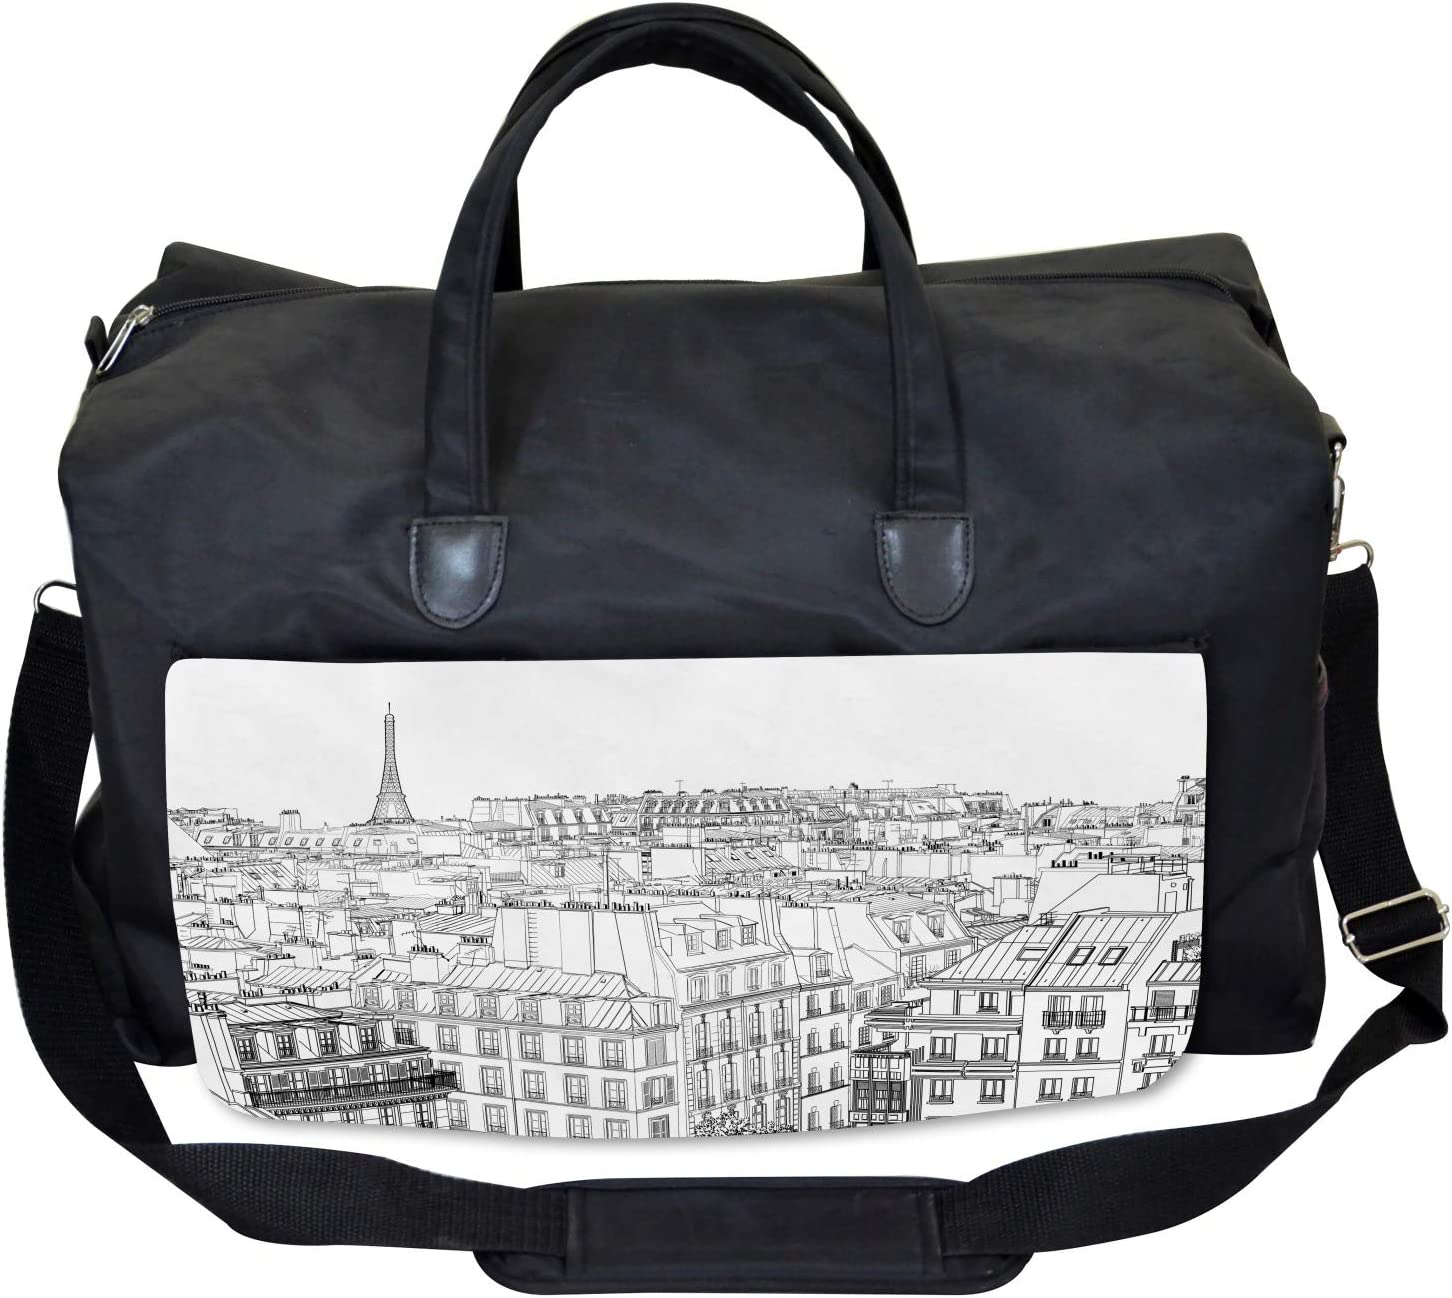 Roofs in Paris and Eiffel Ambesonne Paris Gym Bag Large Weekender Carry-on